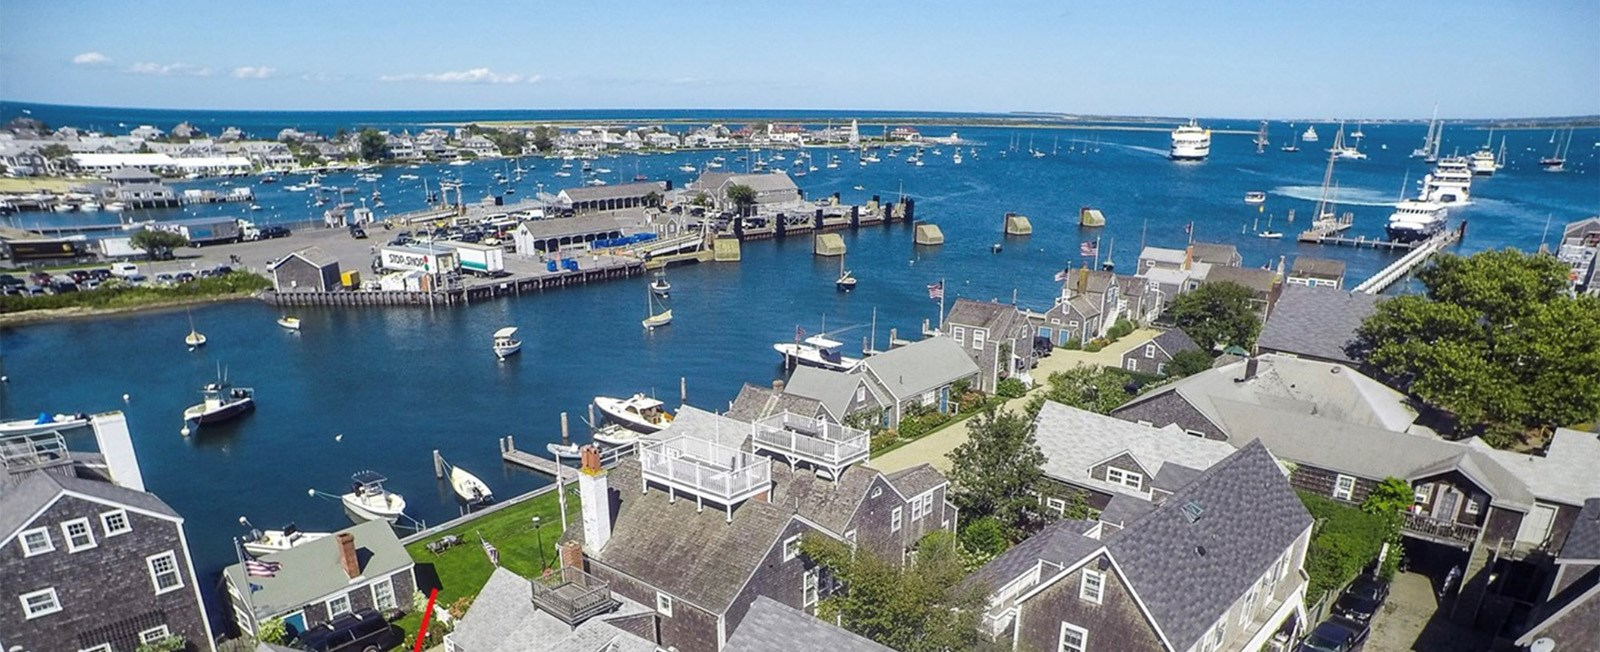 Are you still hoping to get to visit the island of Nantucket this summer? Here are a list of homes that still have availability in August and early September!